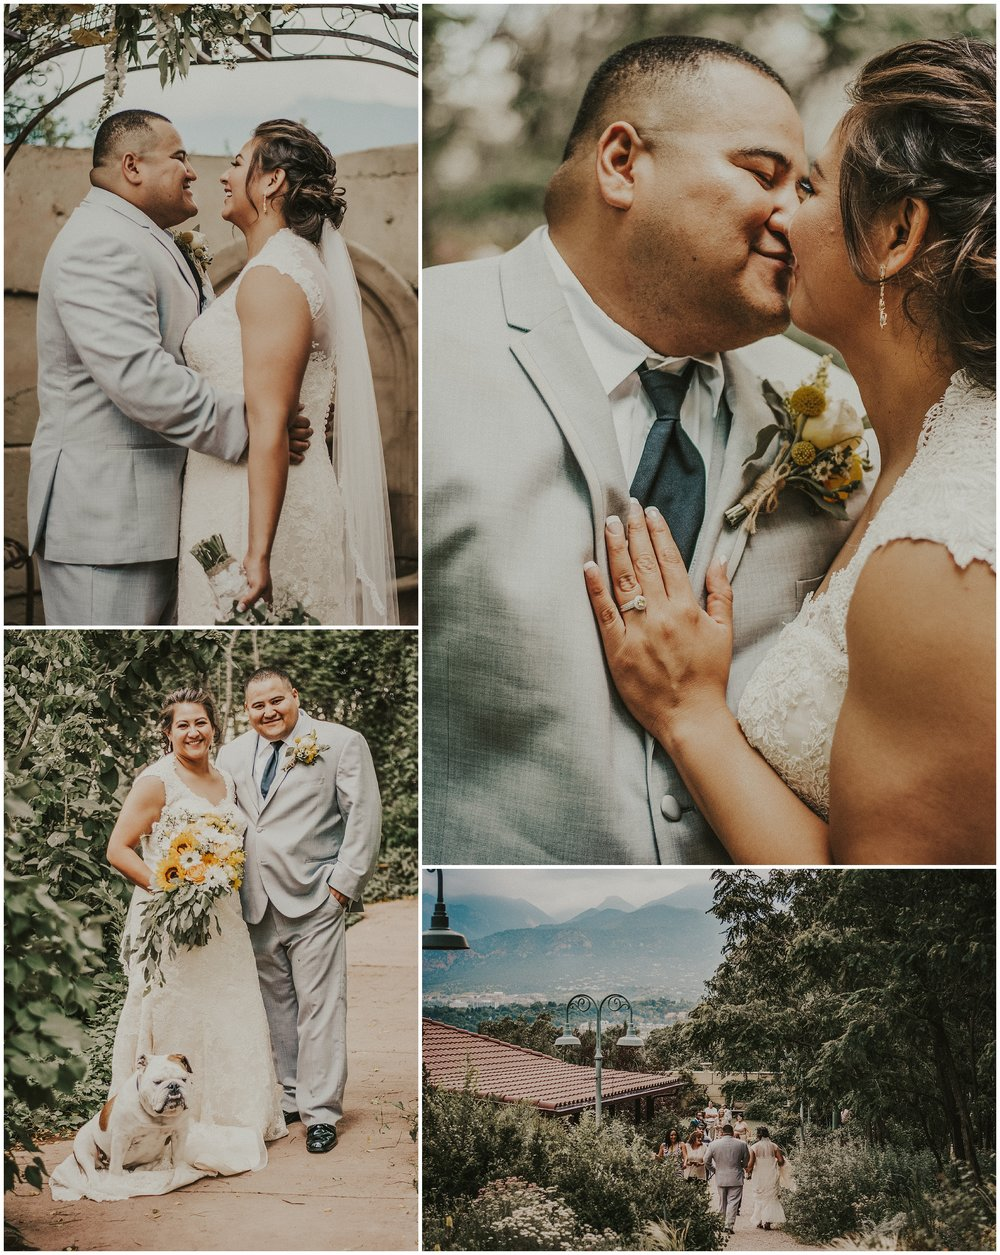 Taylor_Engish_Photography_Colorado_Springs_Wedding11